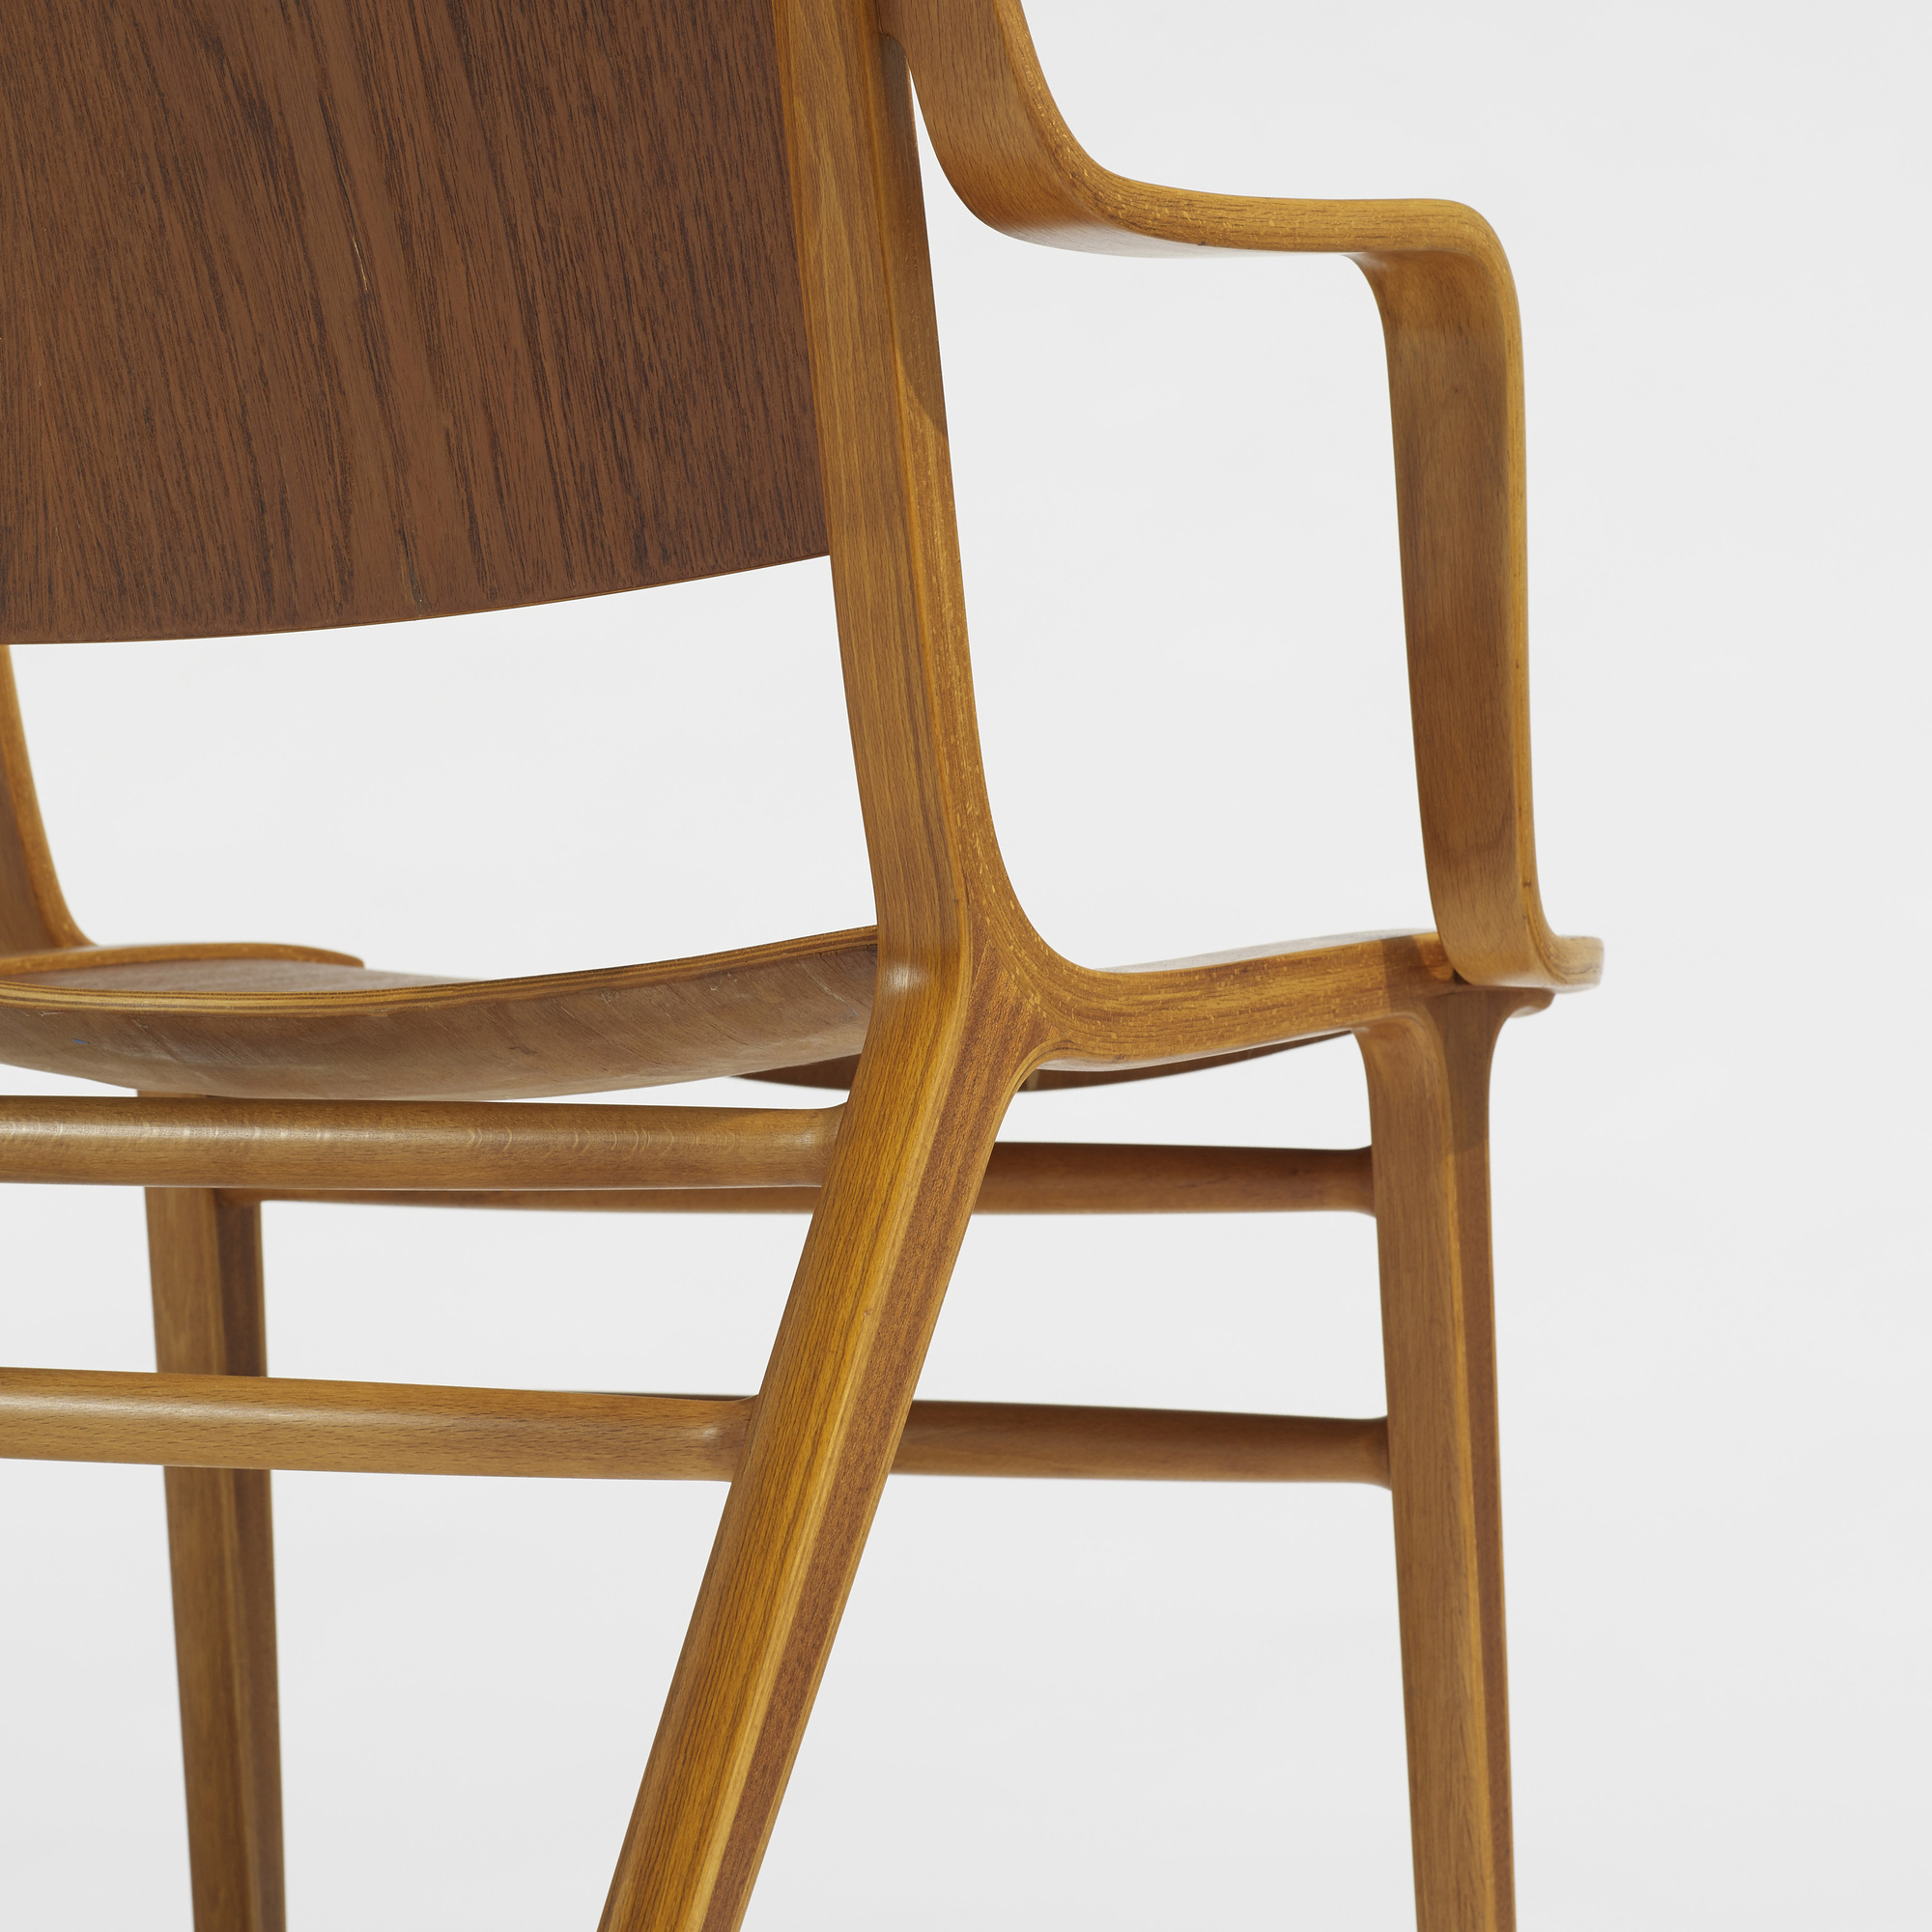 143: Peter Hvidt and Orla Mølgaard-Nielsen / Ax chairs, pair (3 of 3)